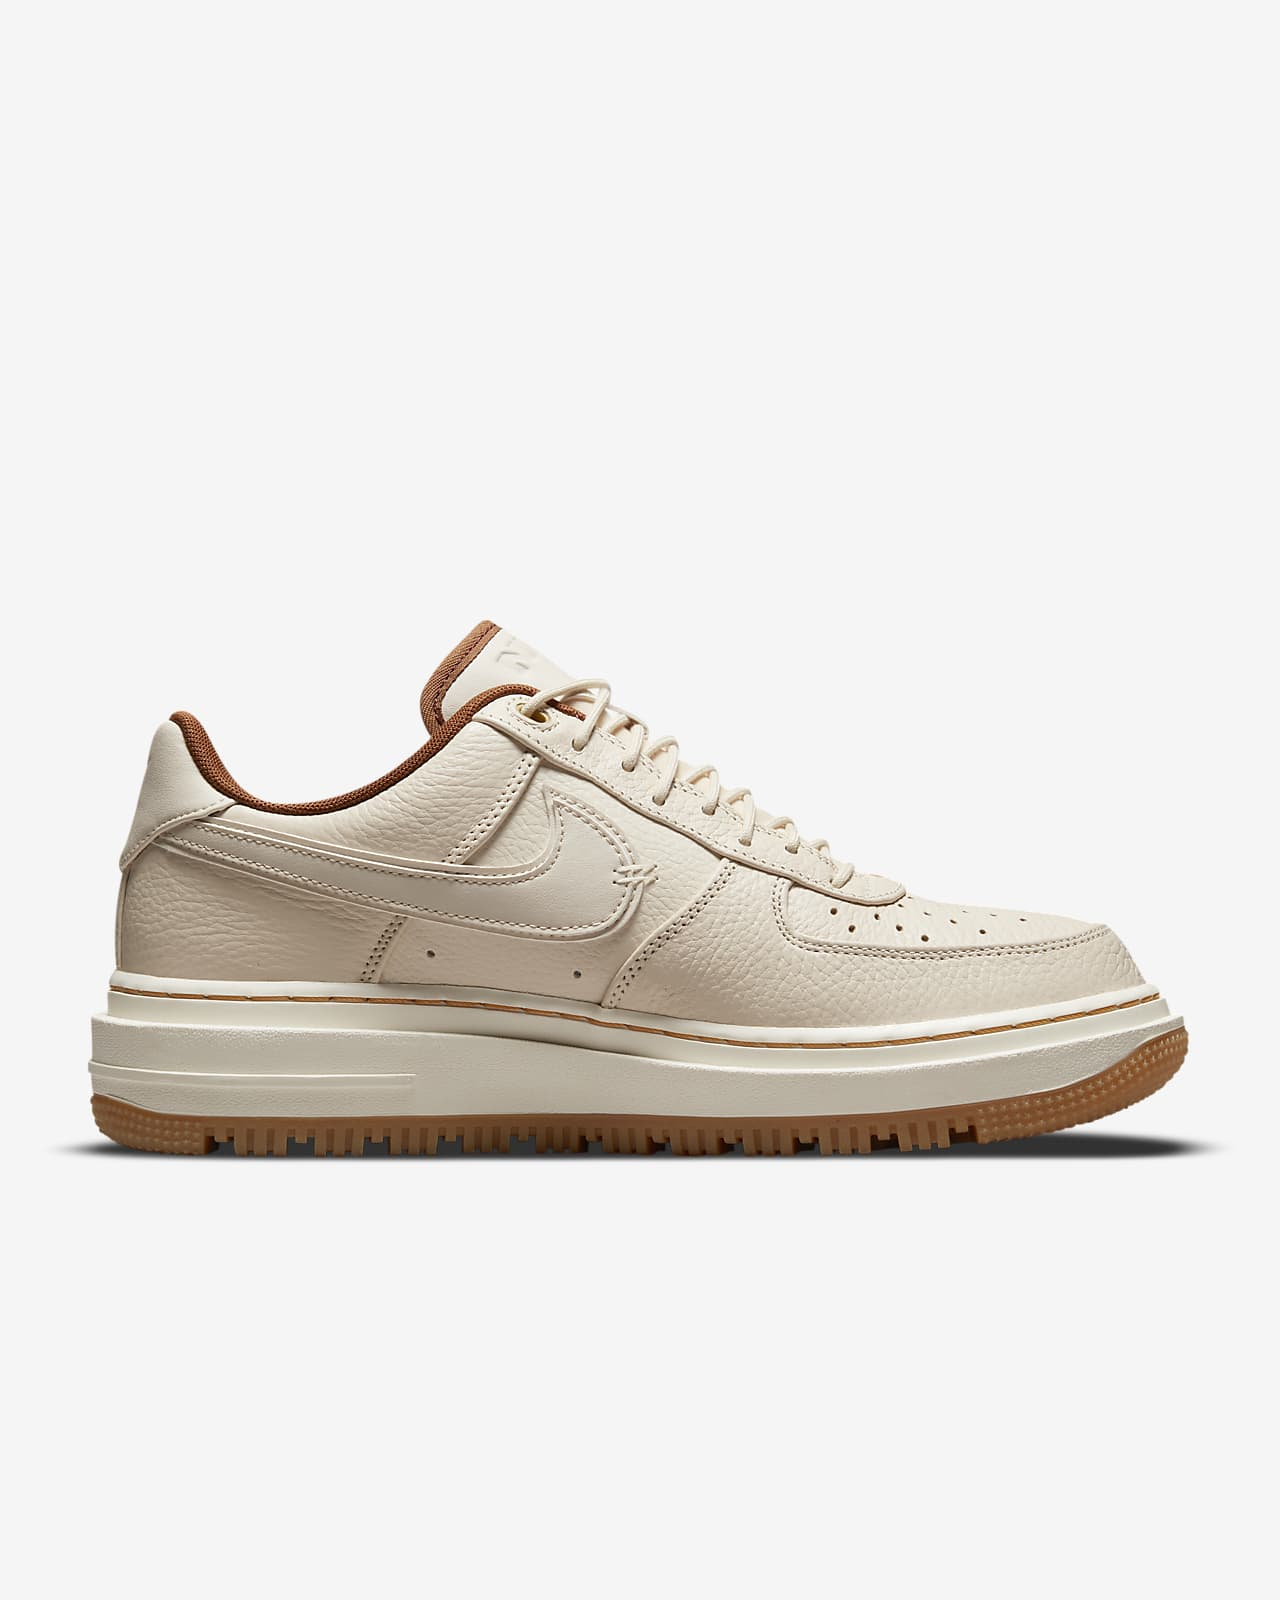 Chaussure Nike Air Force 1 Luxe pour Homme